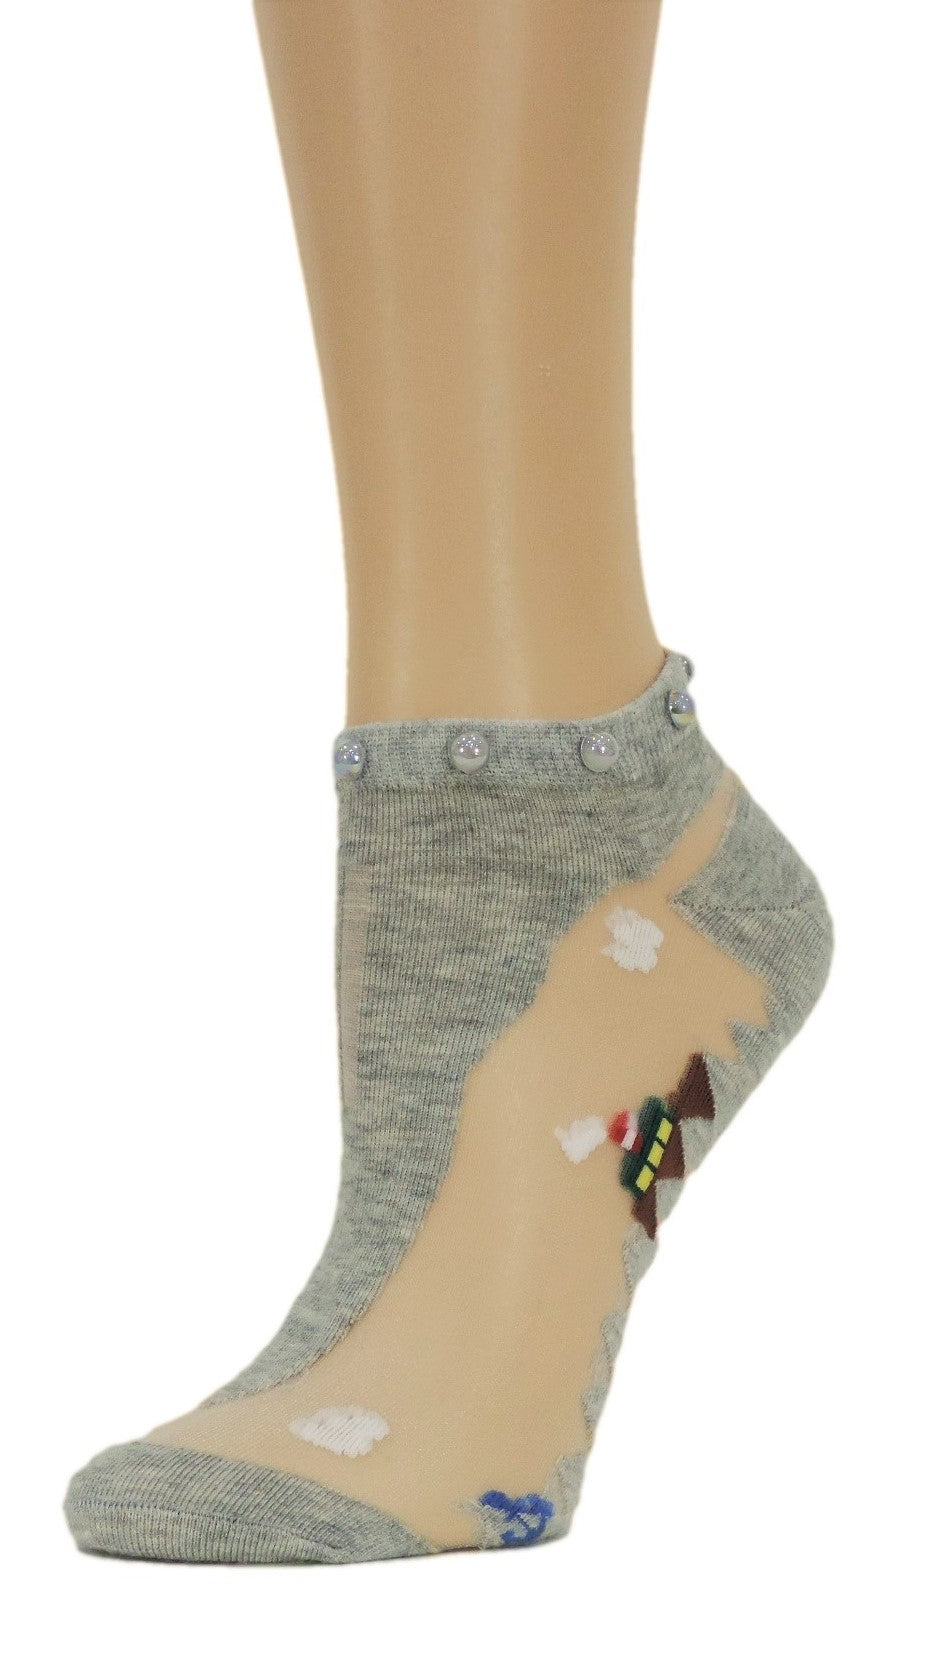 Pretty Grey Custom Ankle Sheer Socks with beads - Global Trendz Fashion®